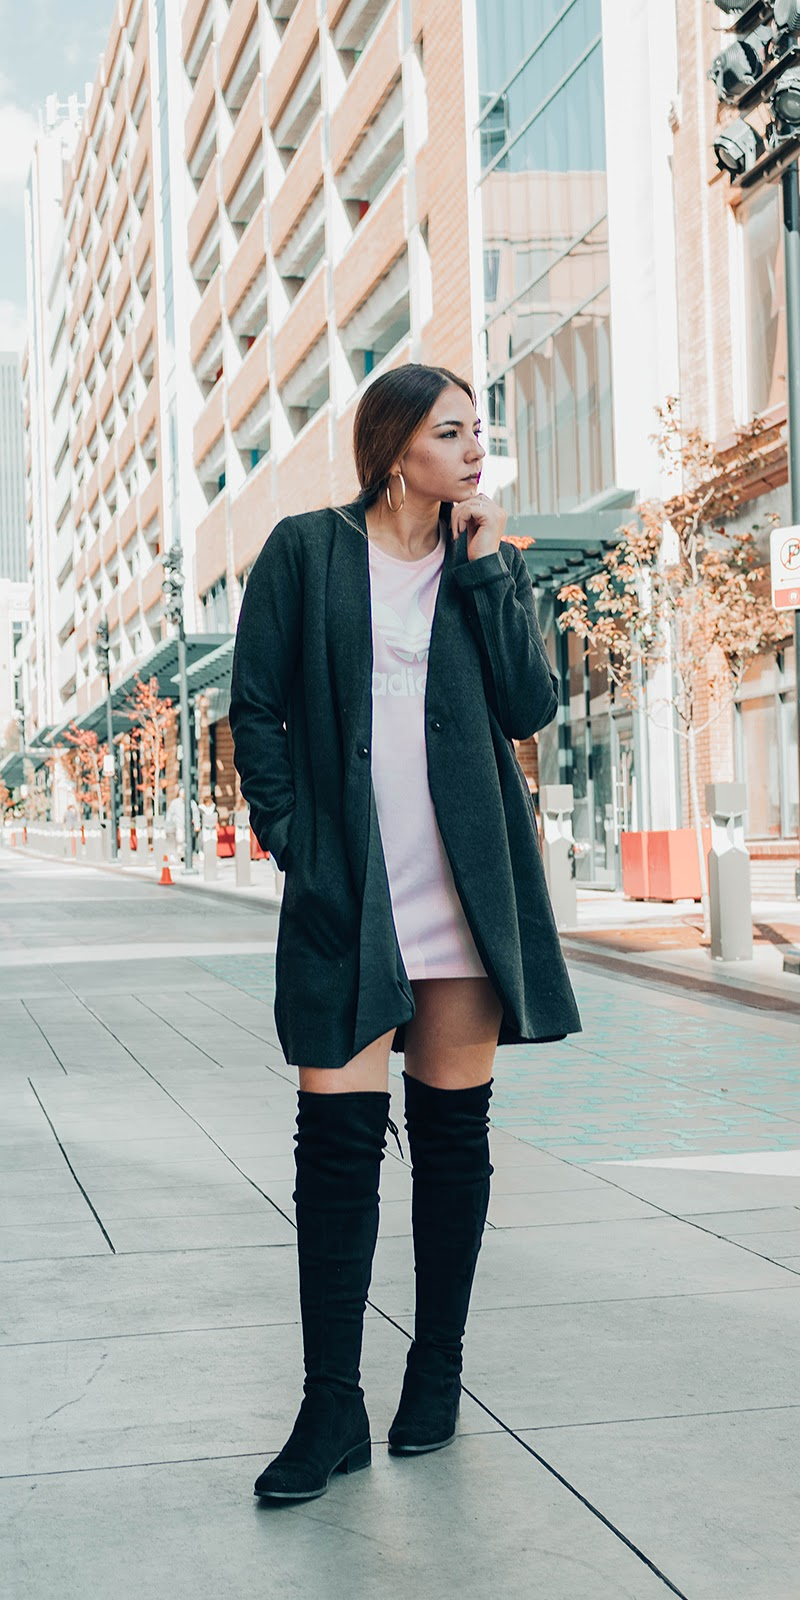 salt lake city fashion blogger, utah blogger, salt lake city blog